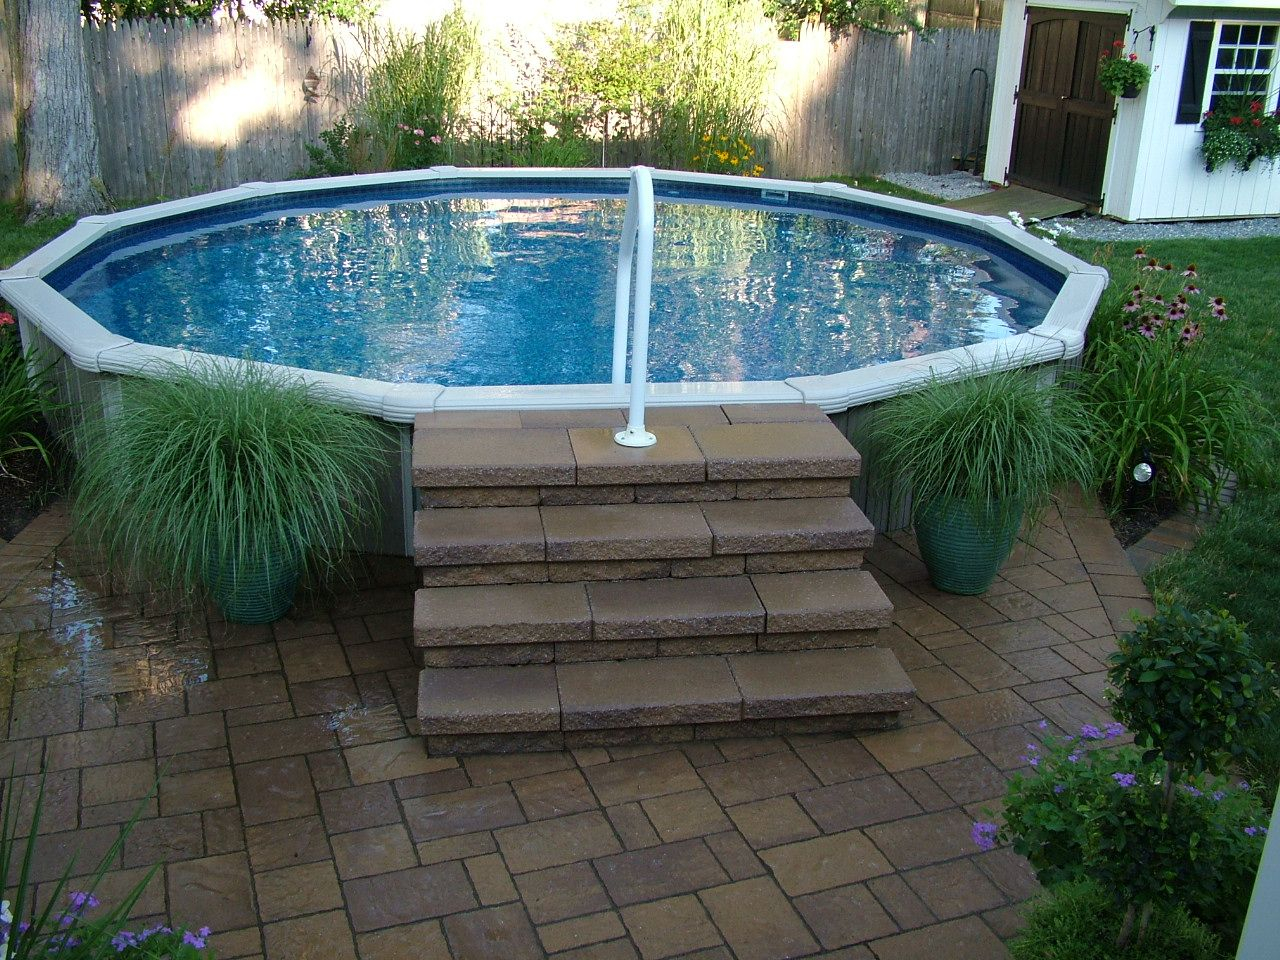 16 Spectacular Above Ground Pool Ideas You Should Steal Need For regarding Above Ground Pool Ideas Backyard